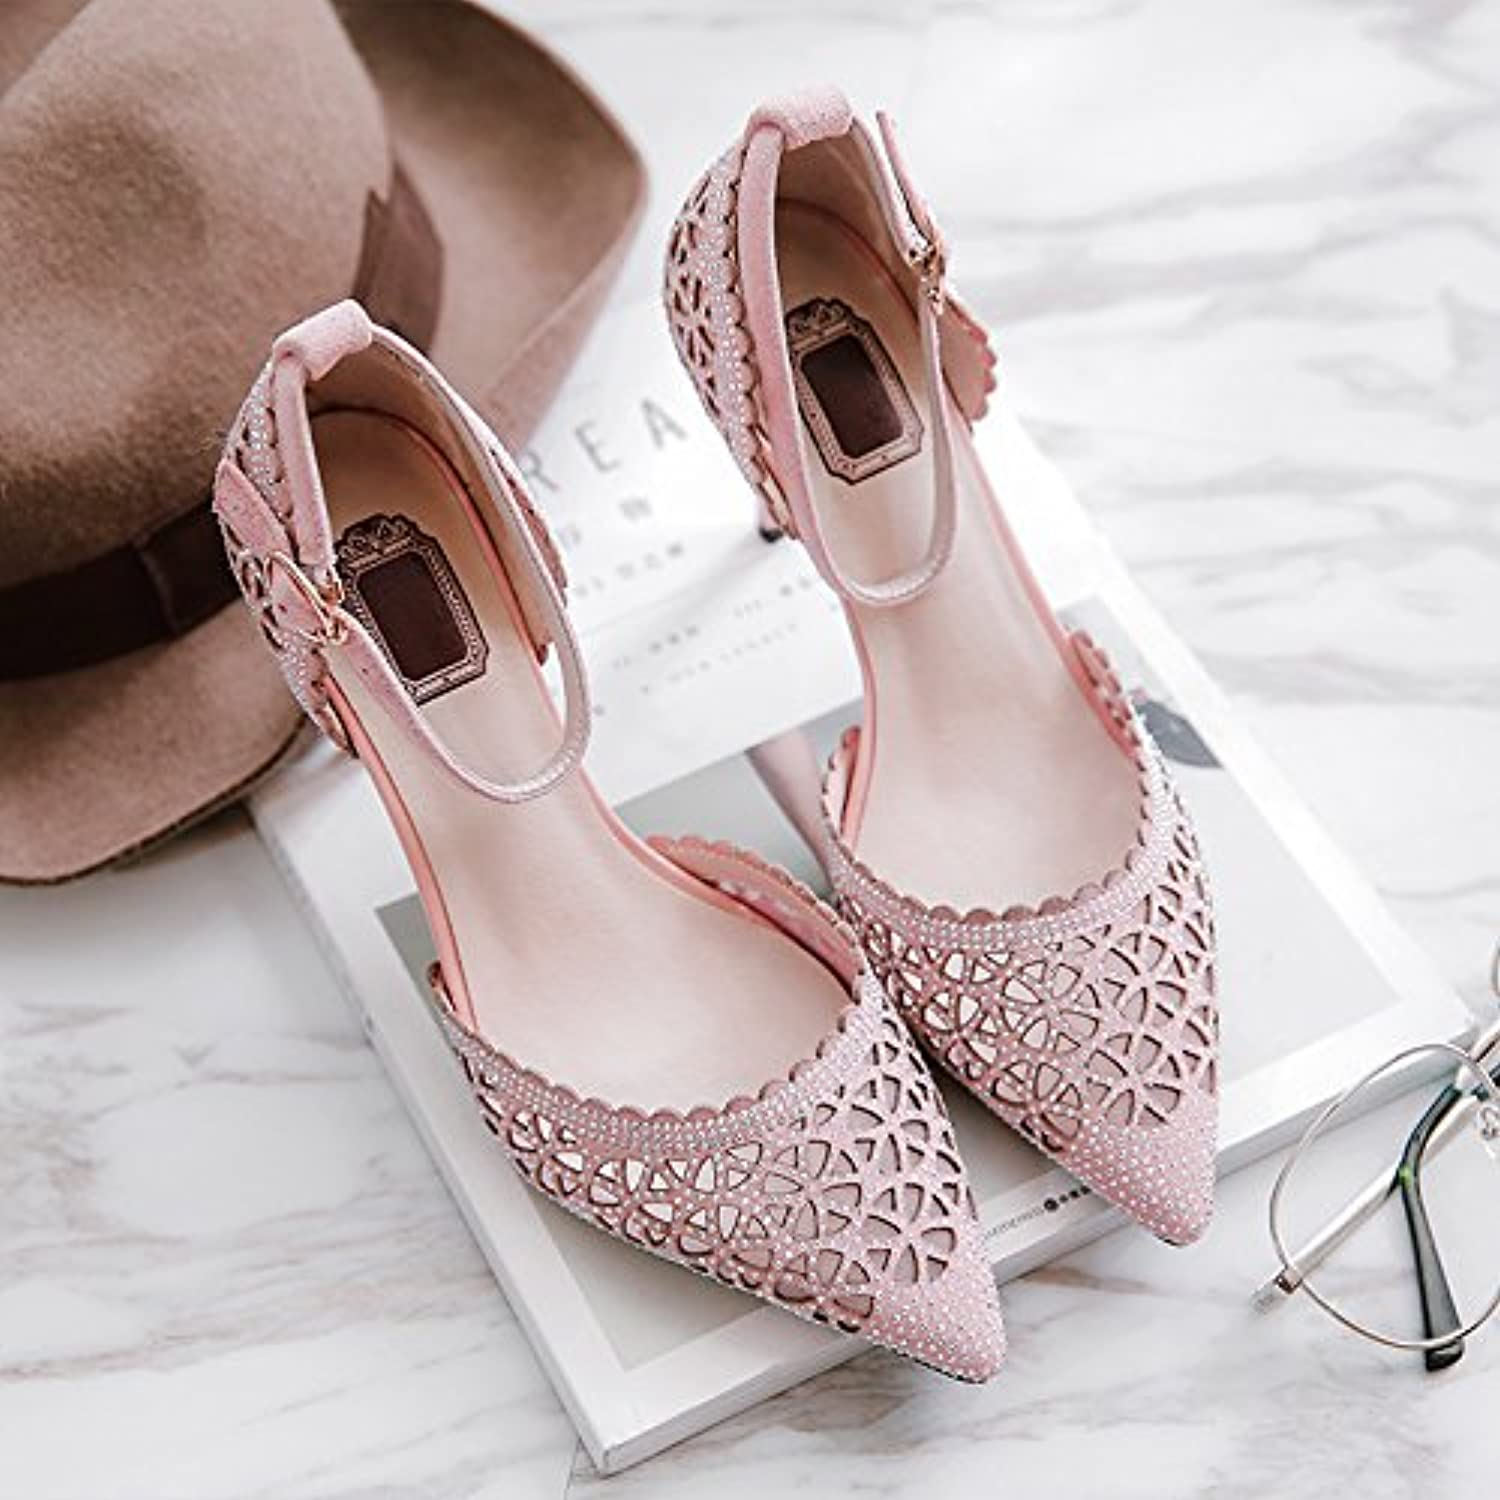 SHOESHAOGE One Word Buckle High Heels Female Fall Hollow Rhinestone Fine With Baotou Sandals Woman Sandalen Fürö